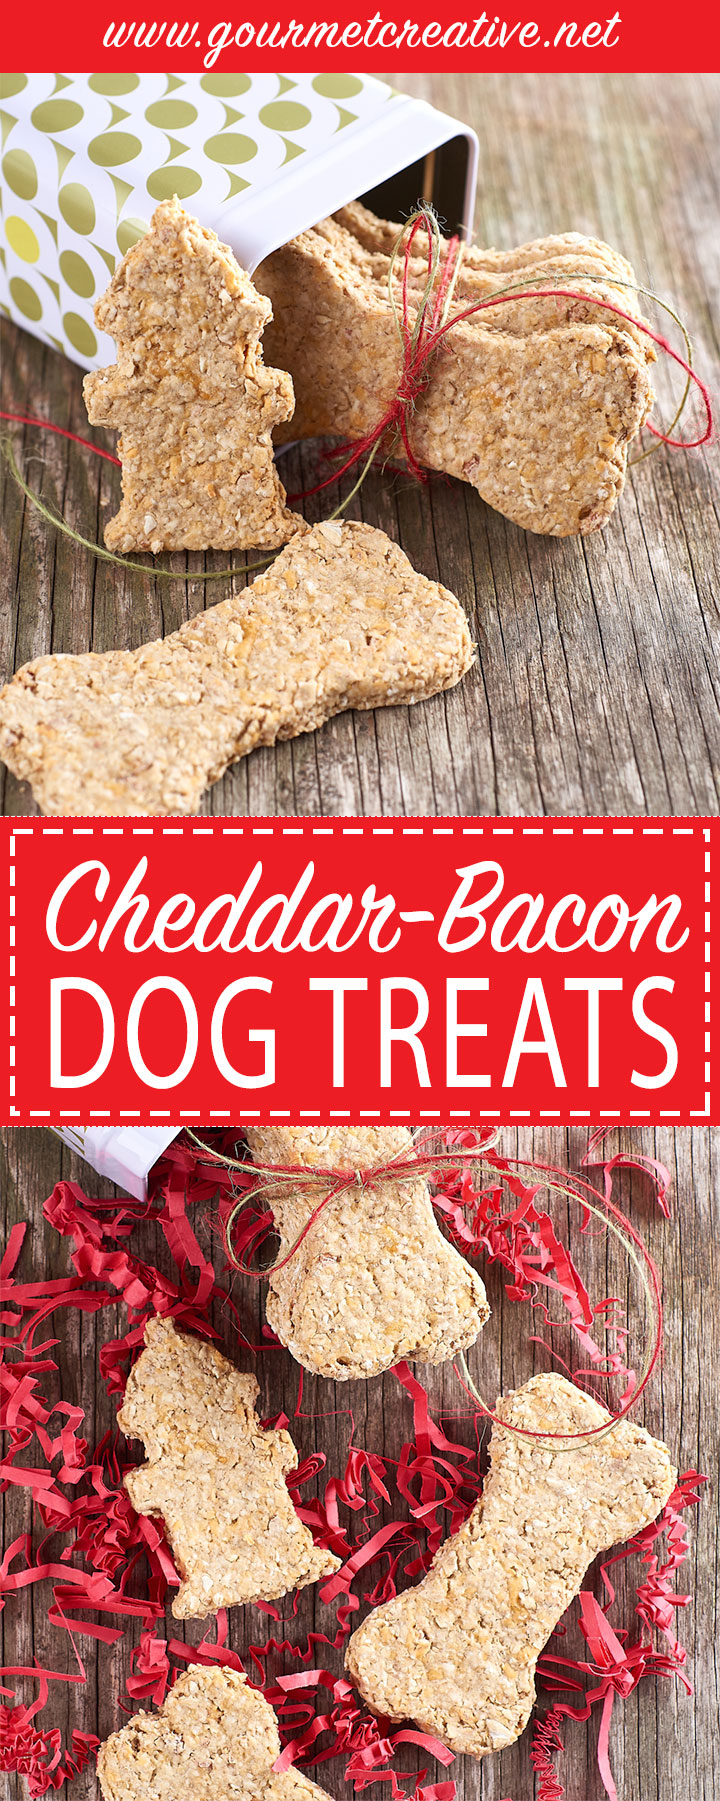 Cheddar Bacon Dog Treats